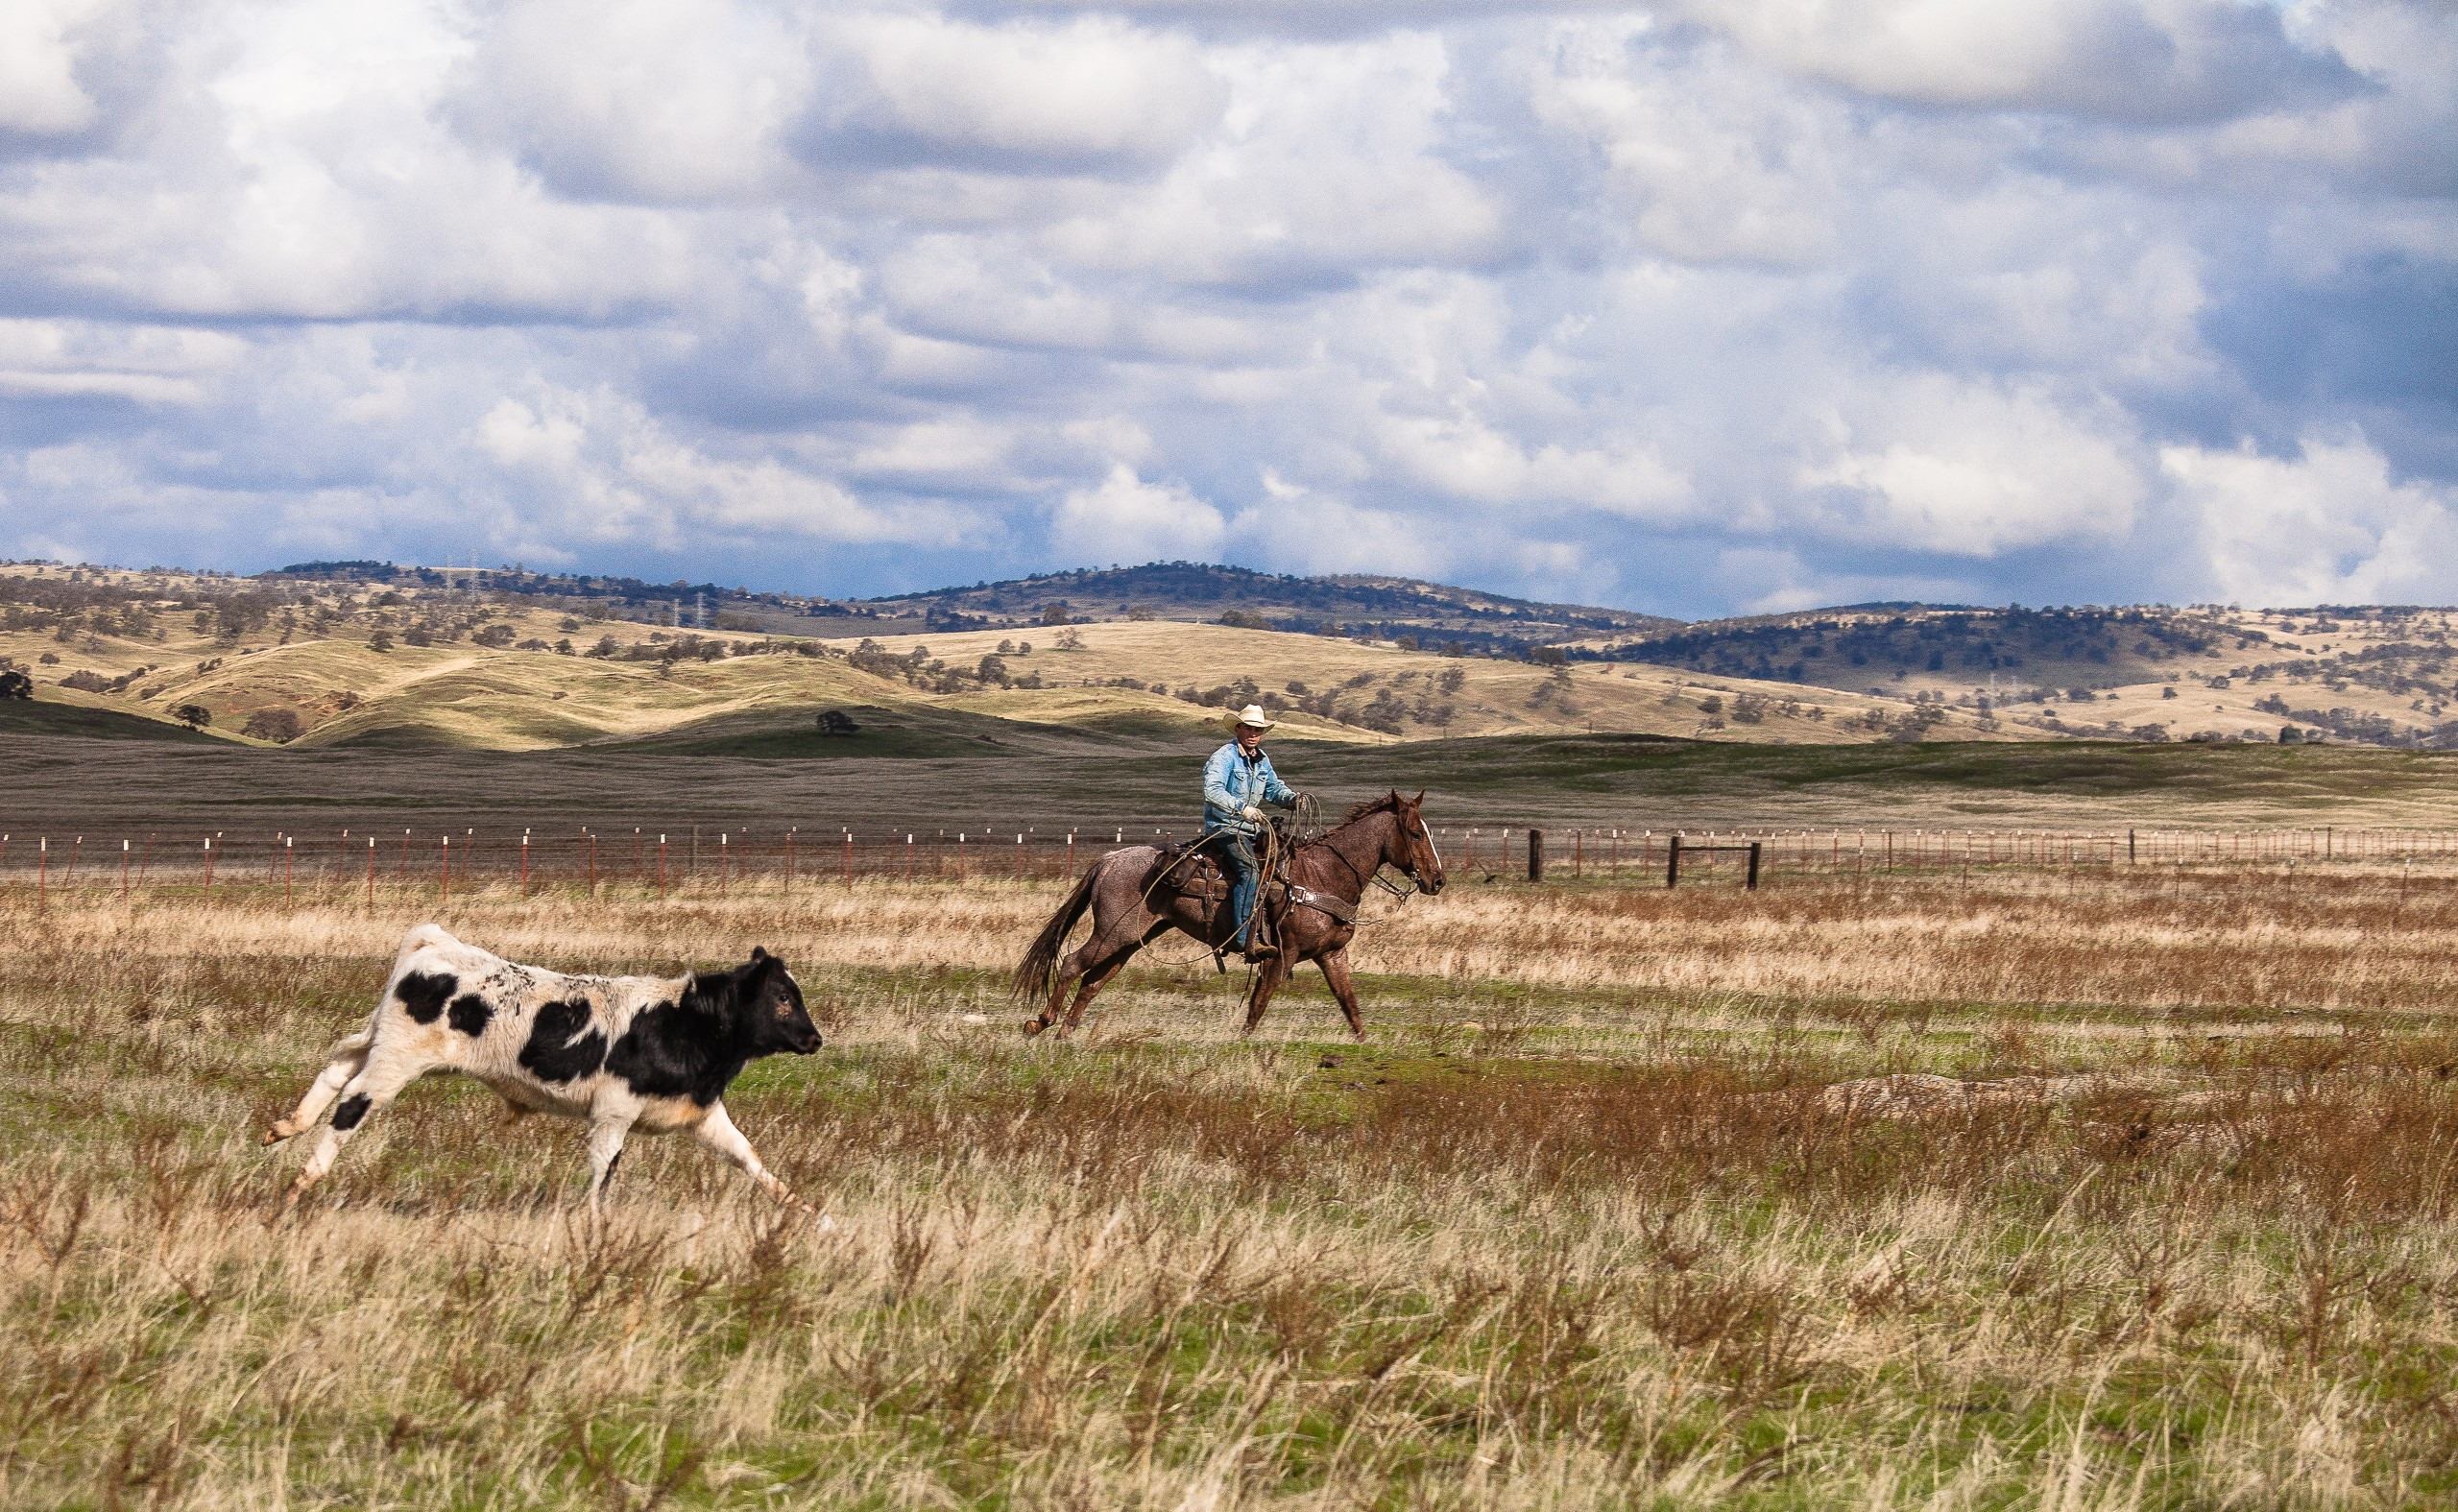 Tracking Him On The Open Range